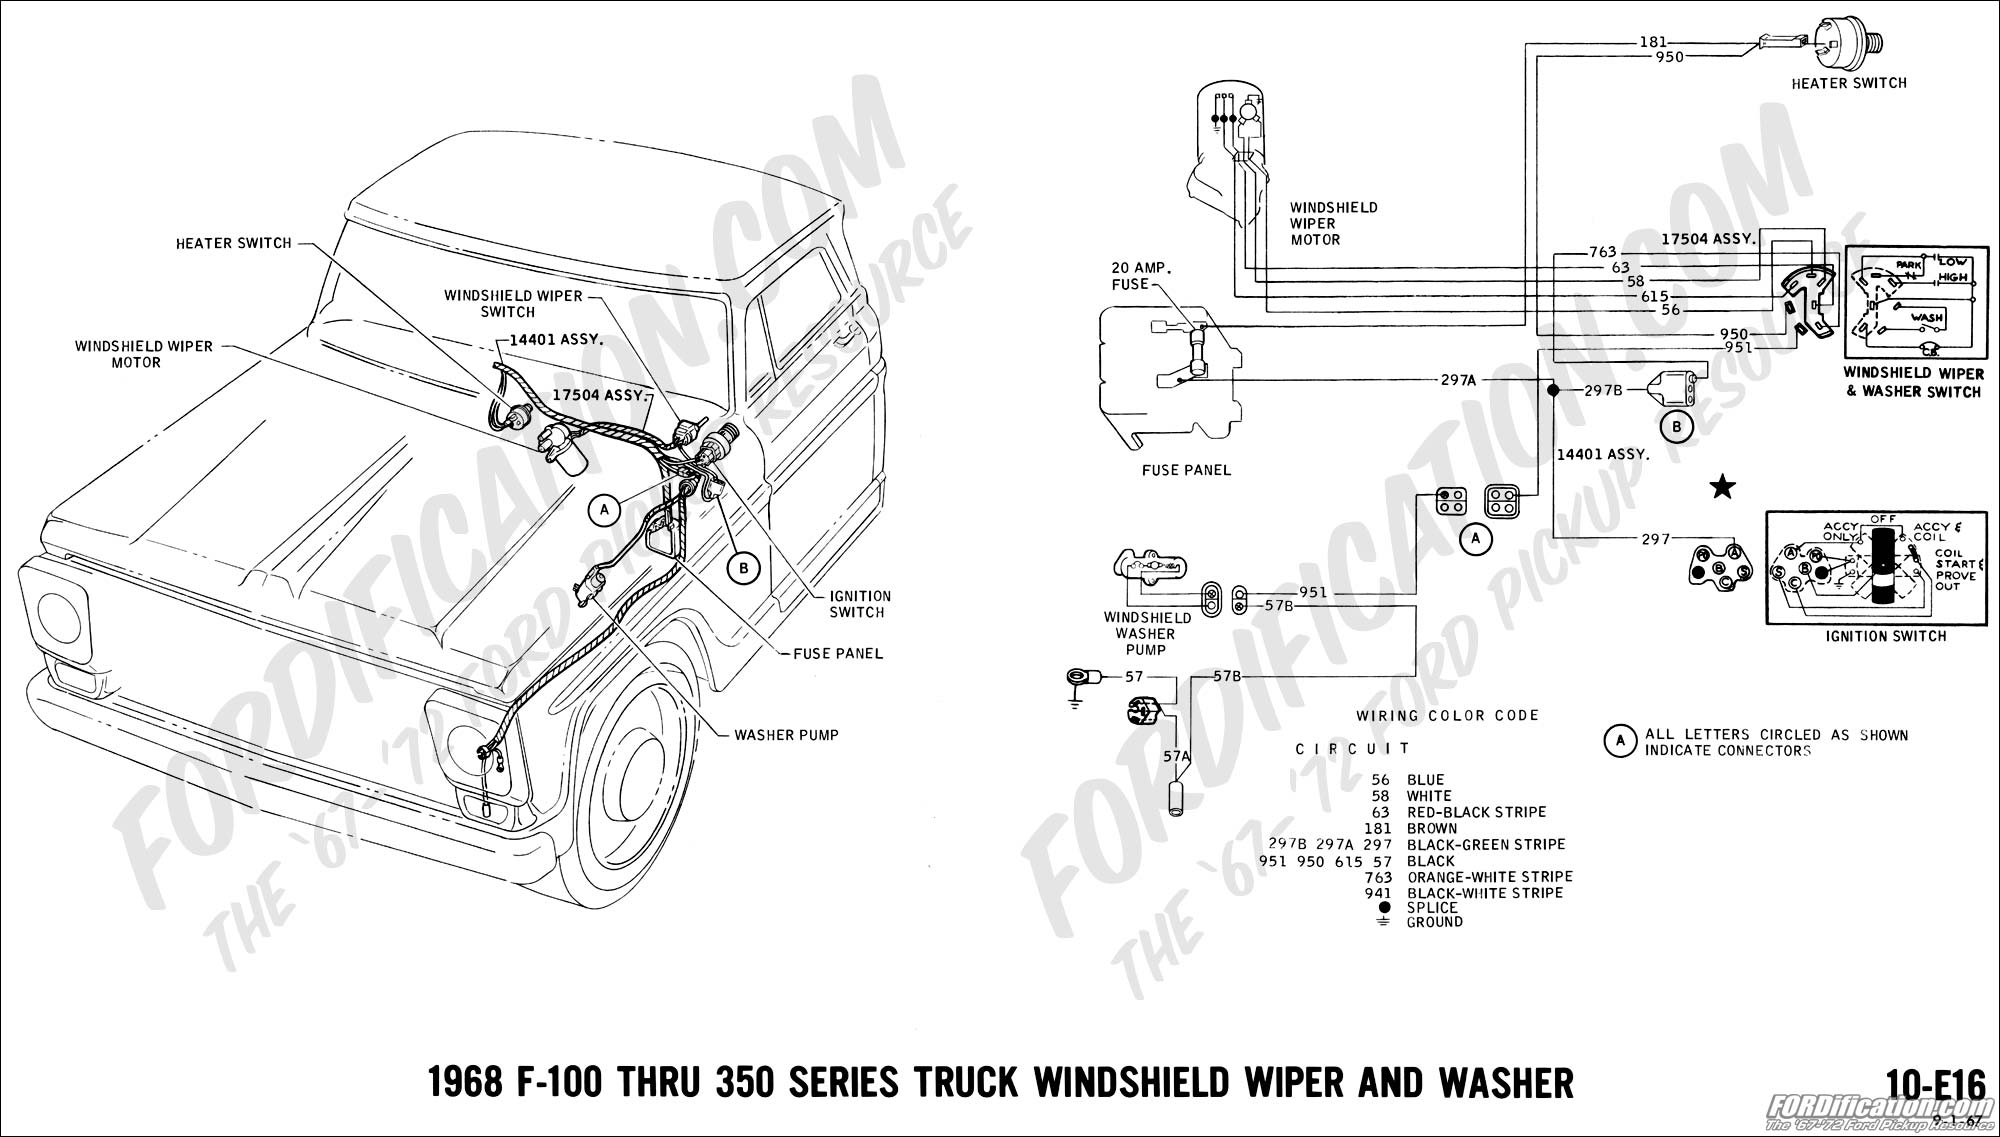 Ford Truck Technical Drawings And Schematics Section H Wiring Panel From Chevy Tail Light Diagram Lights Fuse To 1975 1968 F 100 Thru 350 Windshield Wiper Washer